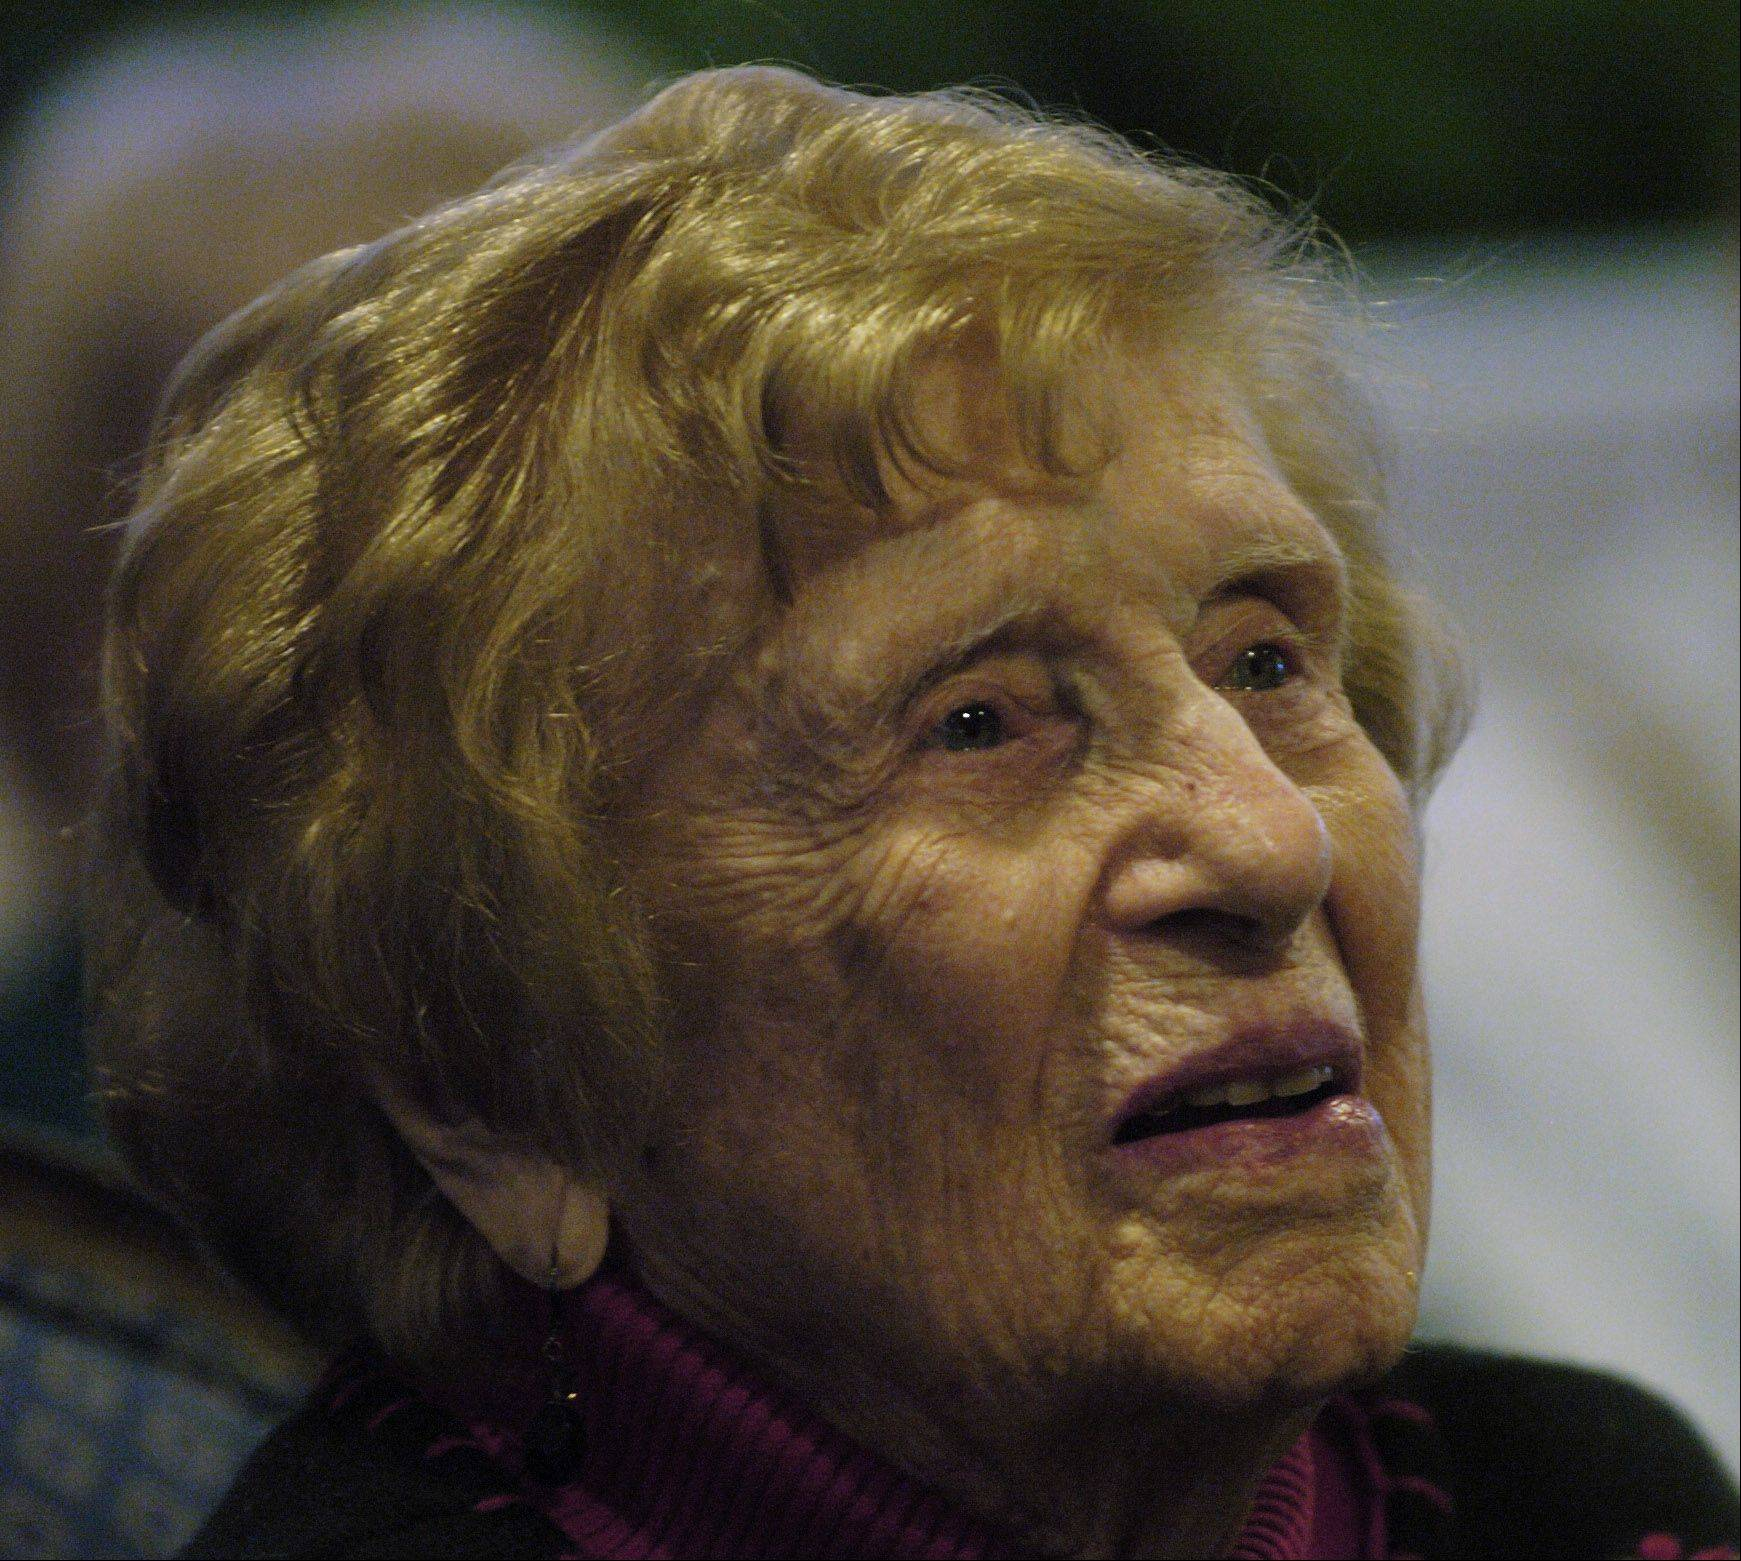 JOE LEWNARD/jlewnard@dailyherald.comLois Arbanas of Arlington Heights celebrated her 105th birthday this weekend. A resident of The Moorings of Arlington Heights, Arbanas says the key to her longevity has been doing things in moderation.